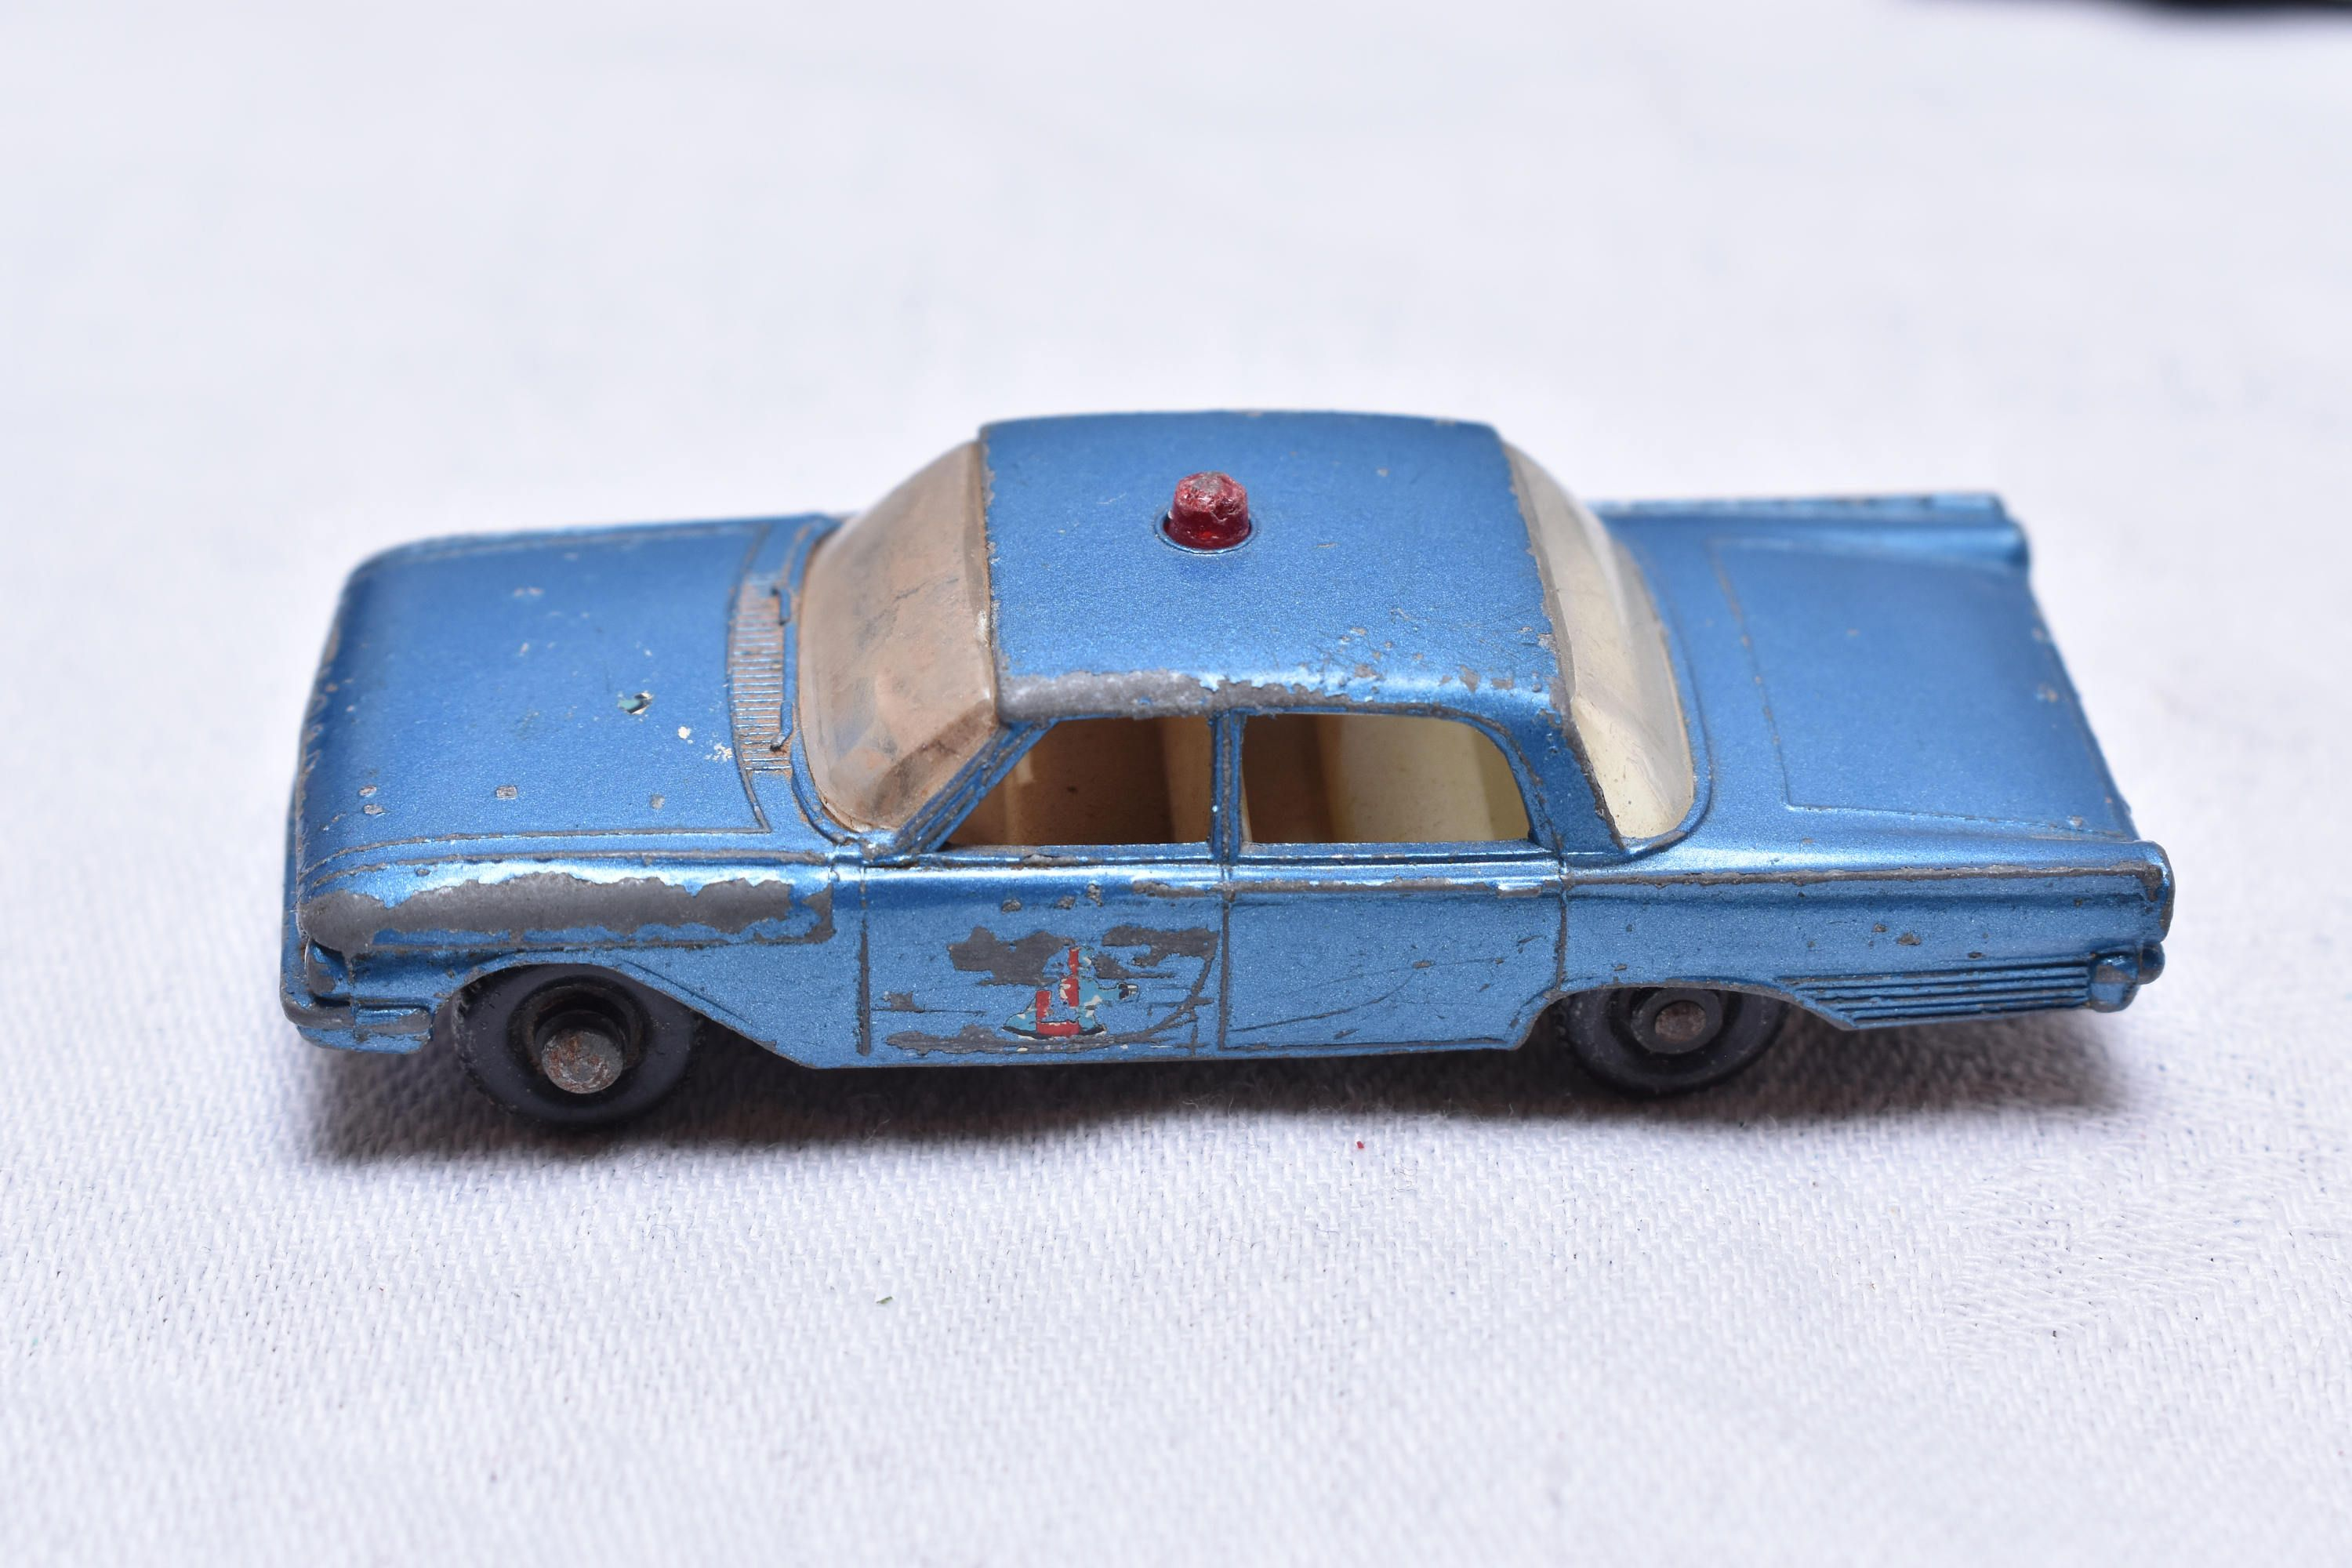 Broken Matchbox Lesney No 55 Ford Fairlane Police Car England Original Vintage Die Cast Toy Car Collection By Rememberwhentoys O Toy Car Matchbox Matchbox Cars